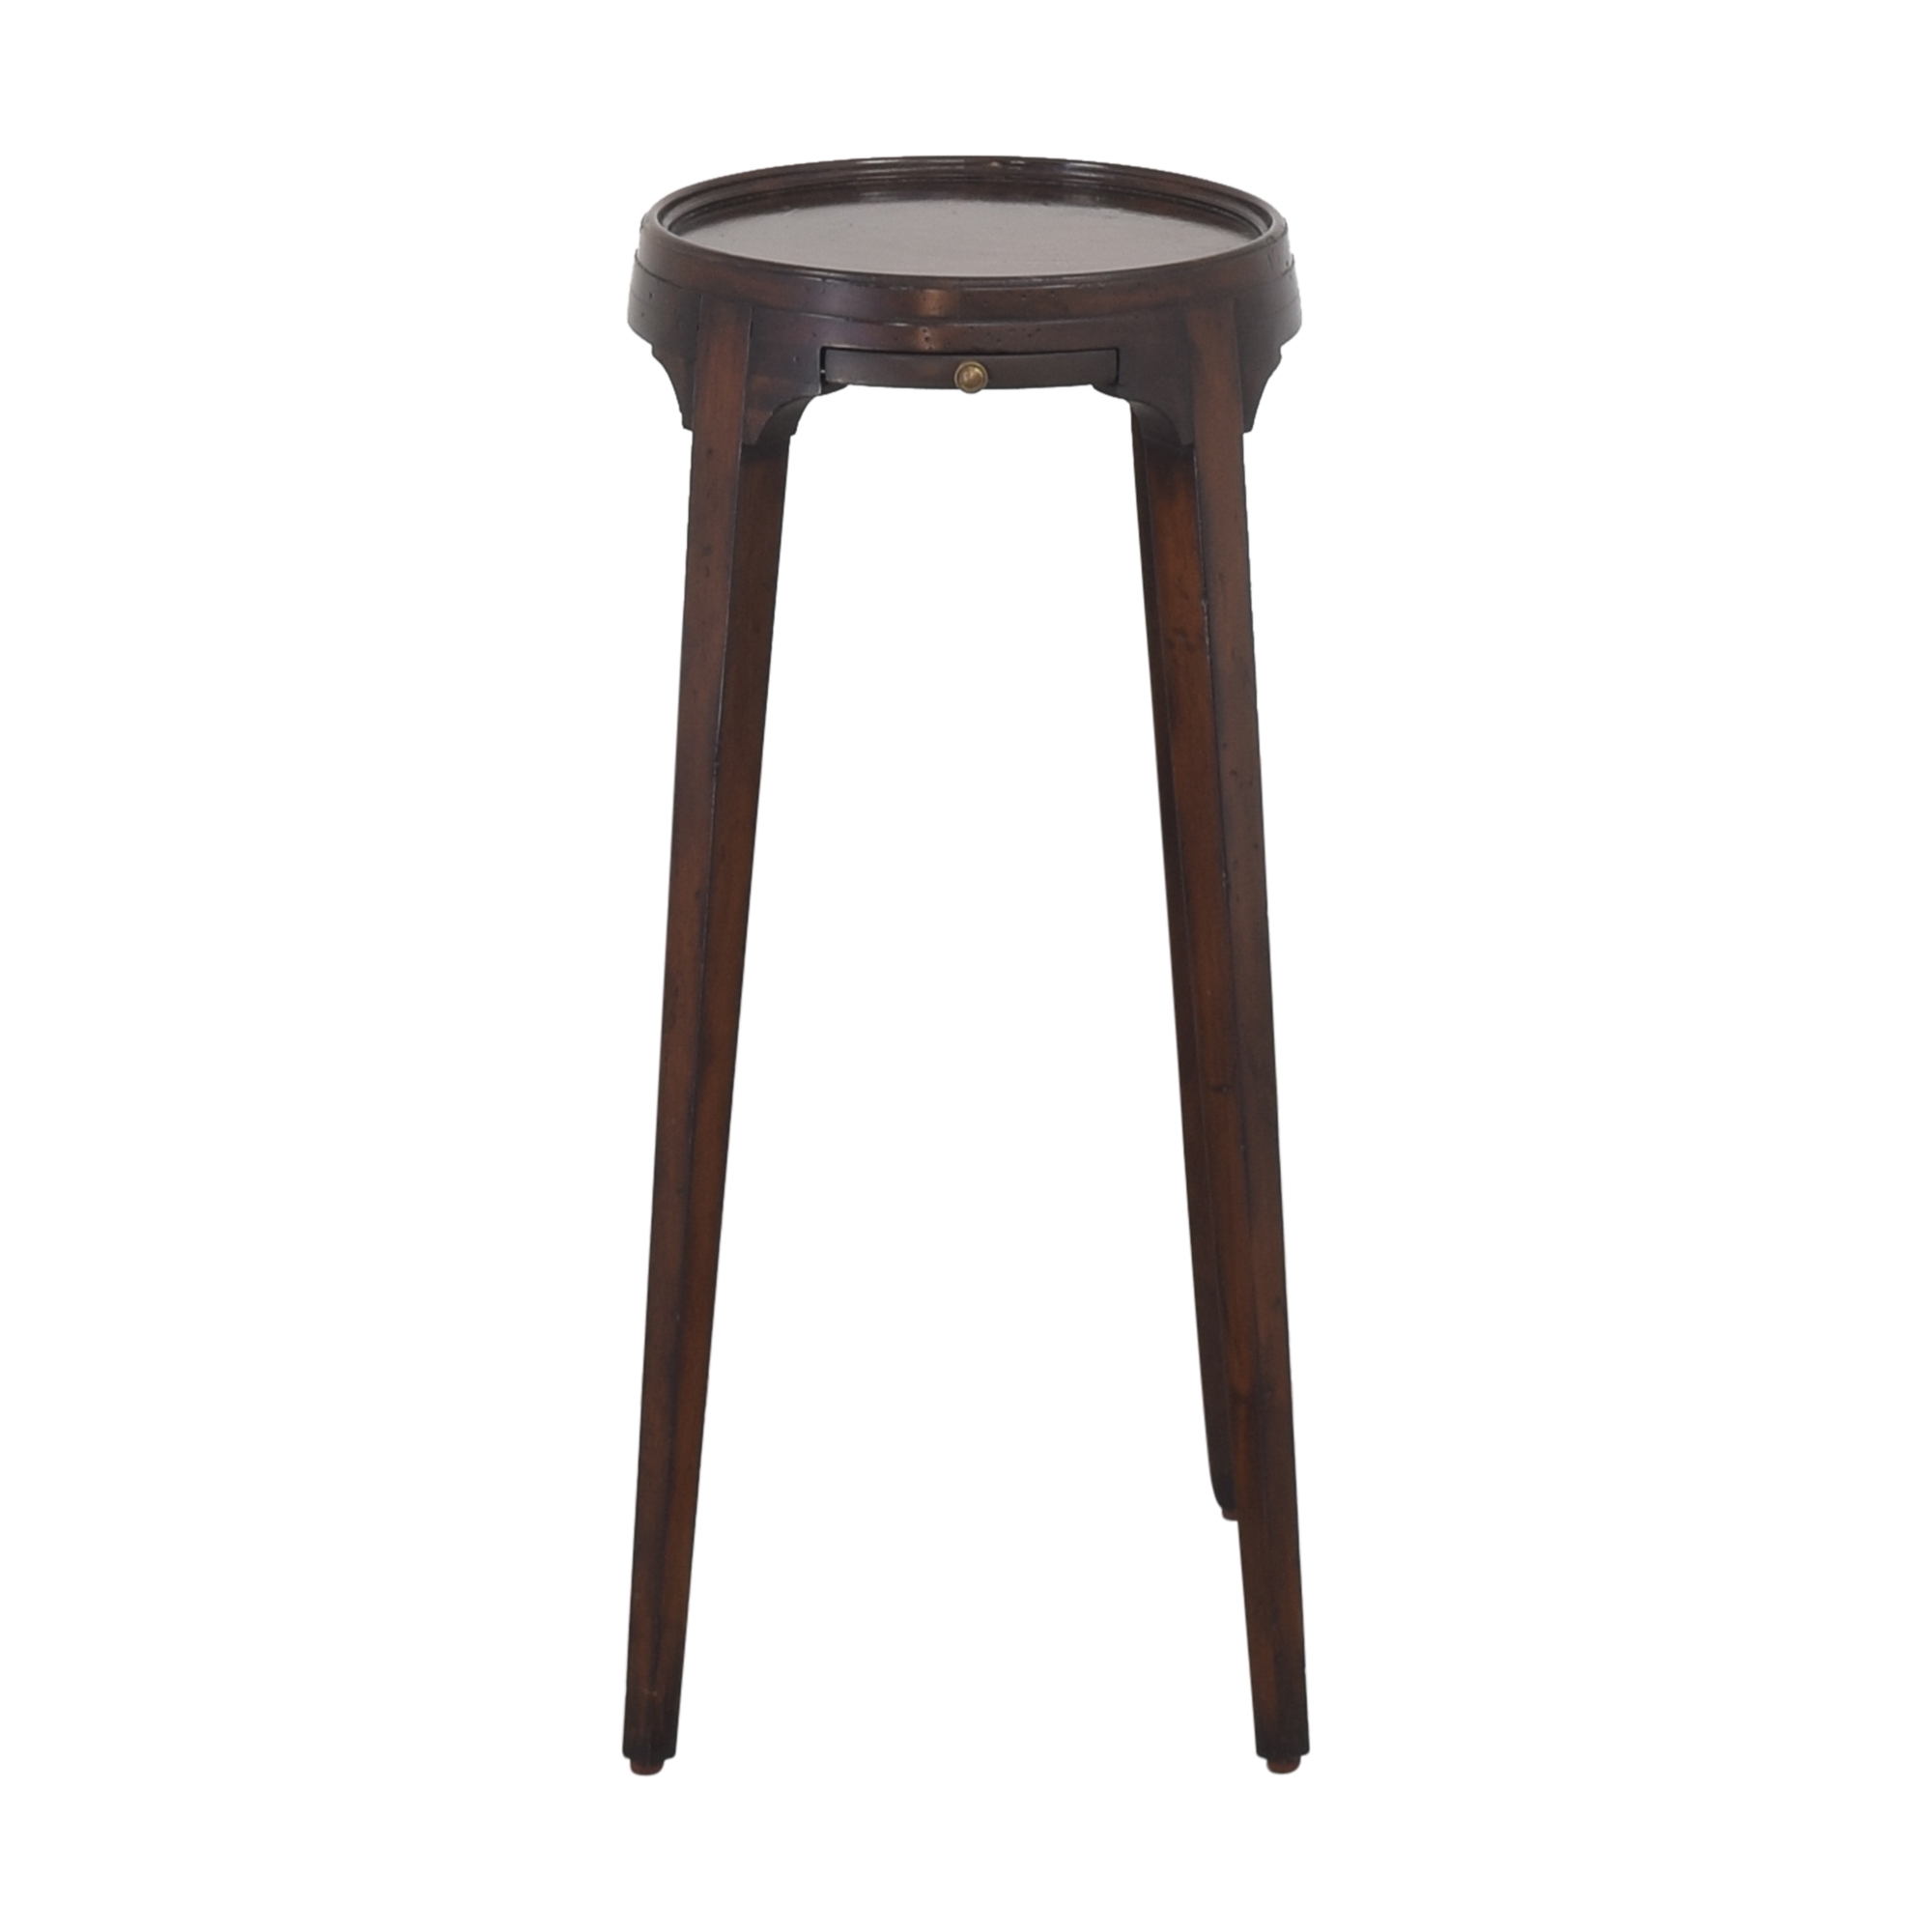 Henredon Furniture Henredon Furniture Acquisitions End Table with Desk Extension price